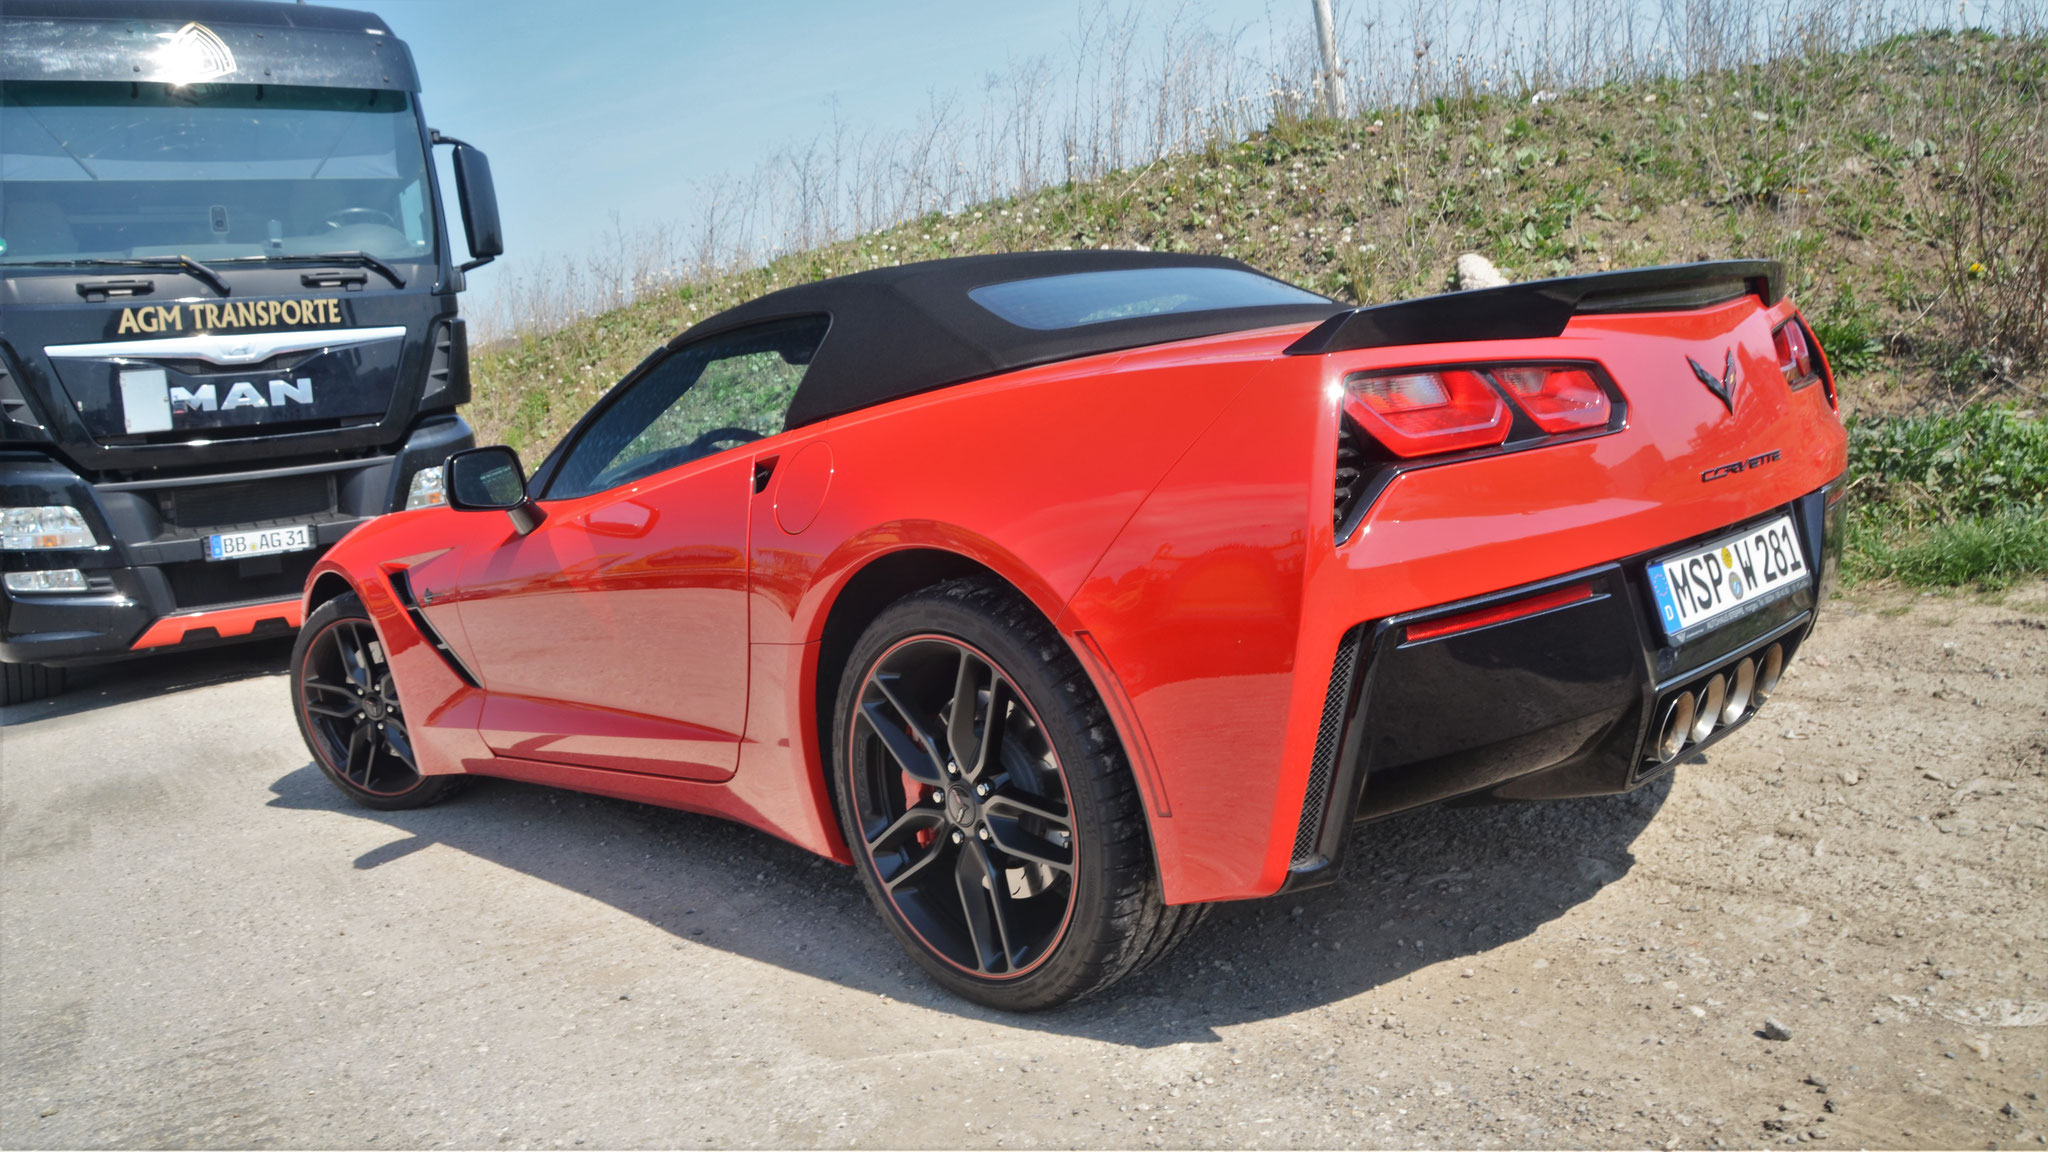 Chevrolet Corvette C7 Convertible - MSP-W-281